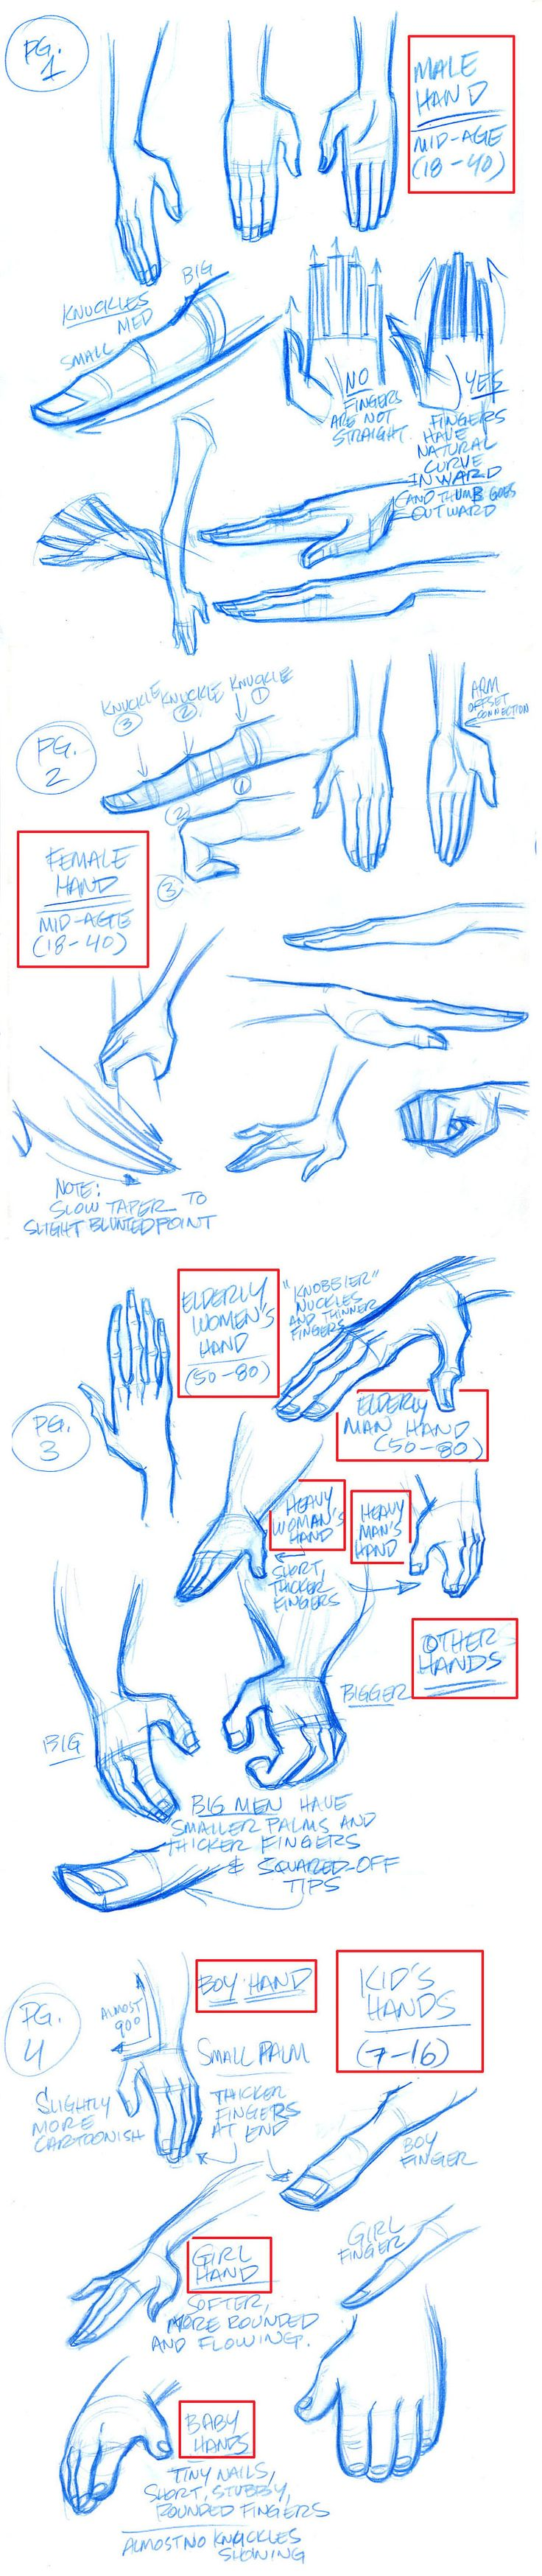 Stylized Hands model sheets by tombancroft on deviantART ✤ || CHARACTER DESIGN REFERENCES | キャラクターデザイン |  • Find more at https://www.facebook.com/CharacterDesignReferences & http://www.pinterest.com/characterdesigh and learn how to draw: concept art, bandes dessinées, dessin animé, çizgi film #animation #banda #desenhada #toons #manga #BD #historieta #strip #settei #fumetti #anime #cartoni #animati #comics #cartoon from the art of Disney, Pixar, Studio Ghibli and more || ✤